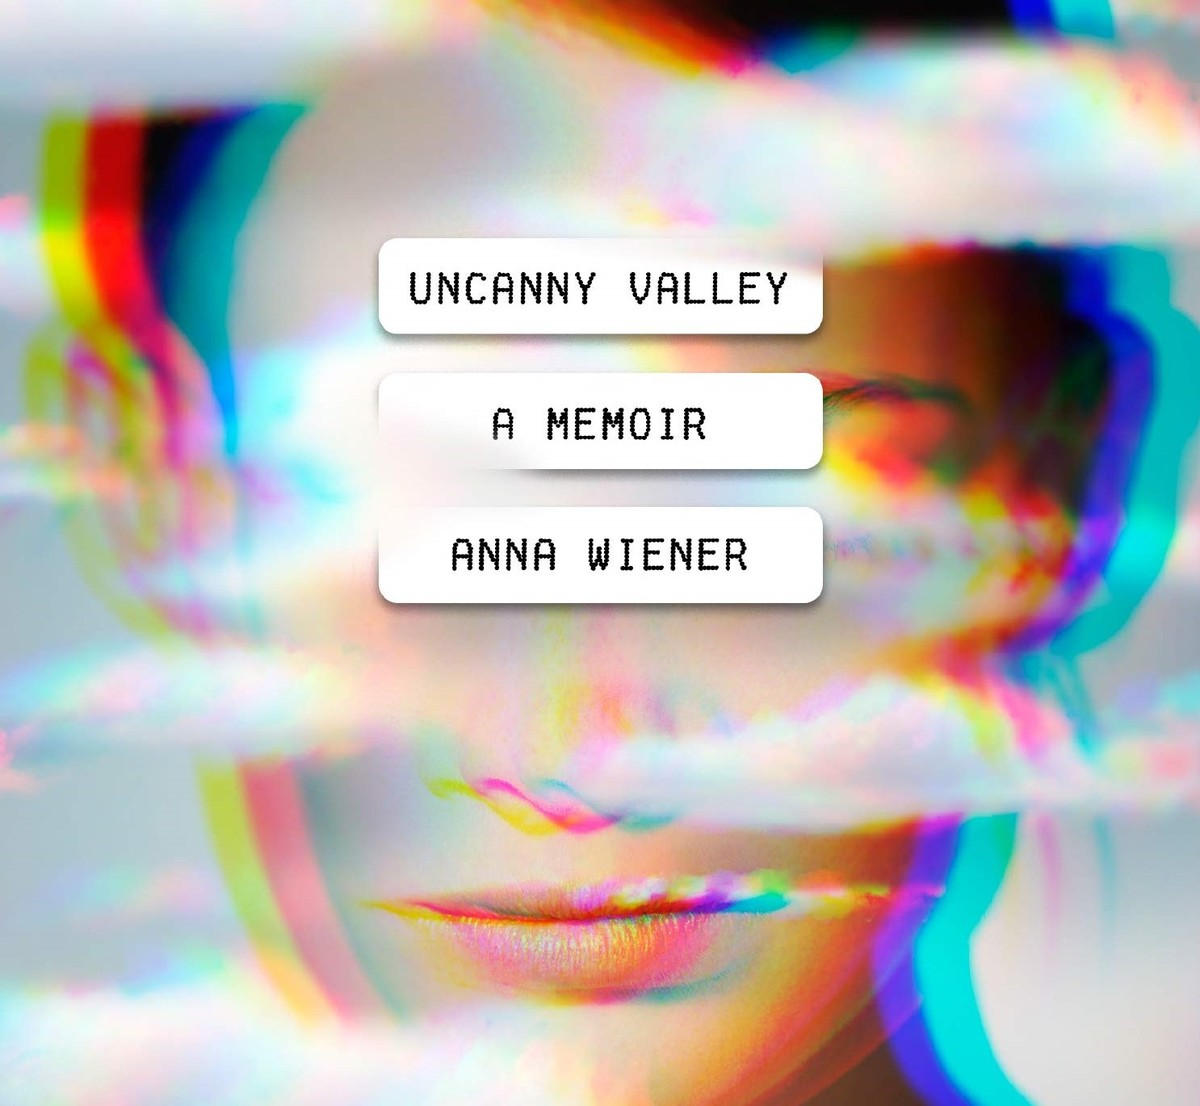 Uncanny Valley Has The Startup Company Gossip You've Been Waiting For